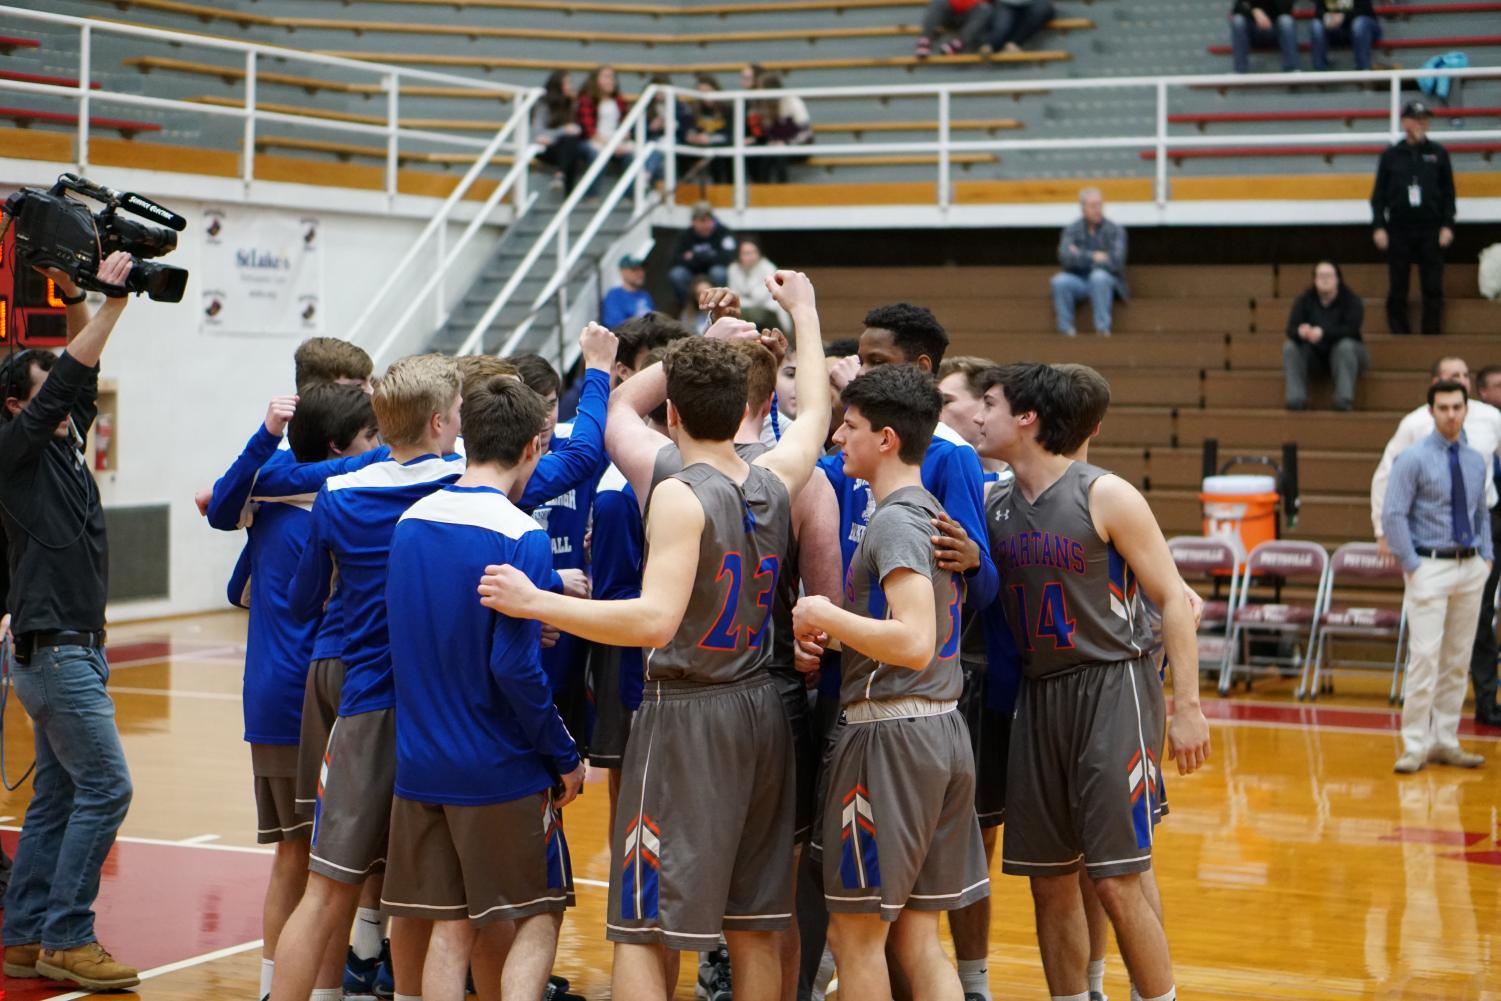 The team huddles up before a District XI playoff game in February. They would go on to win the contest 72-65 behind 26 points from Chris Andrews.